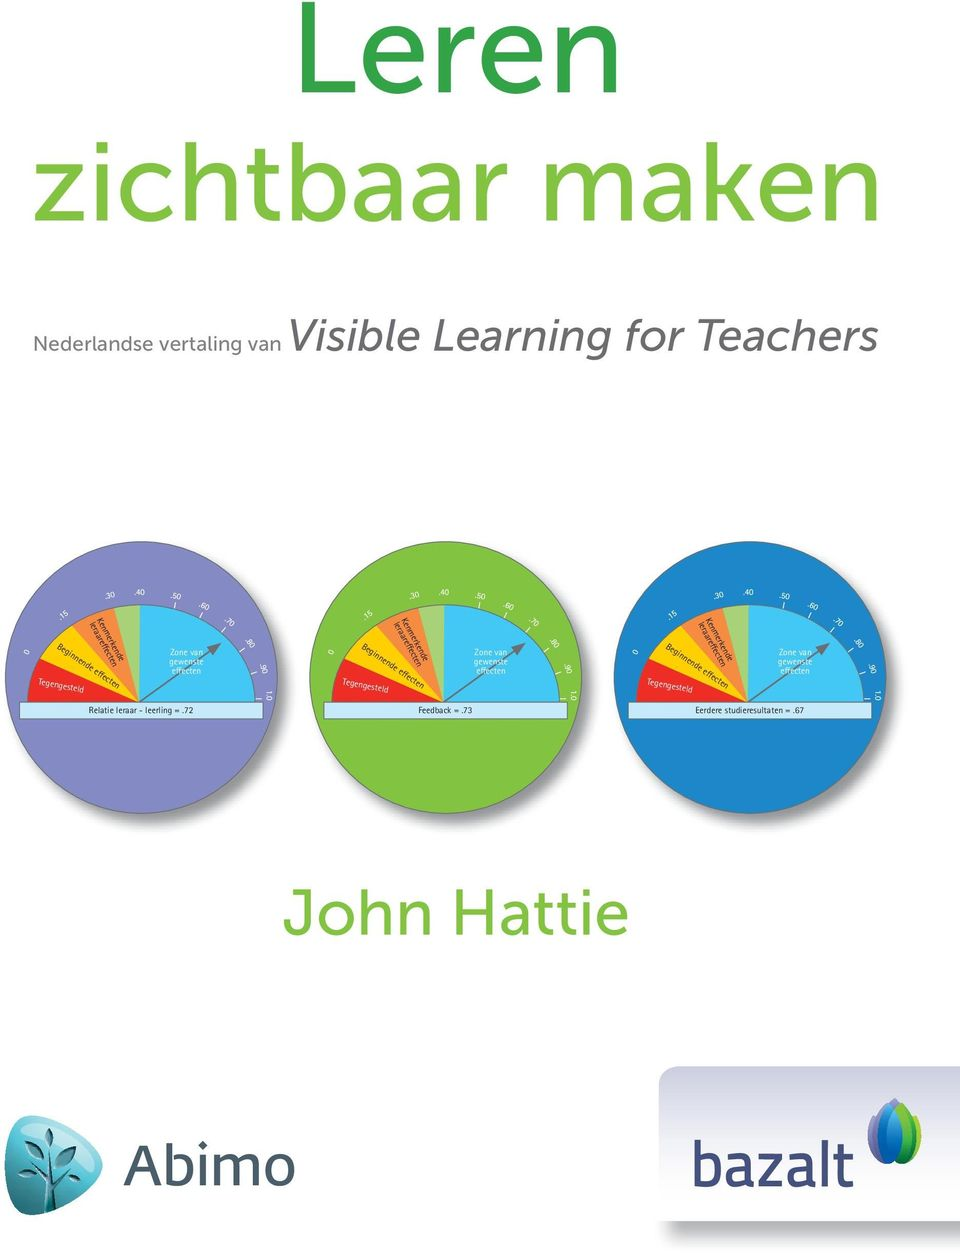 Visible Learning Teaching Strategies and John Hattie